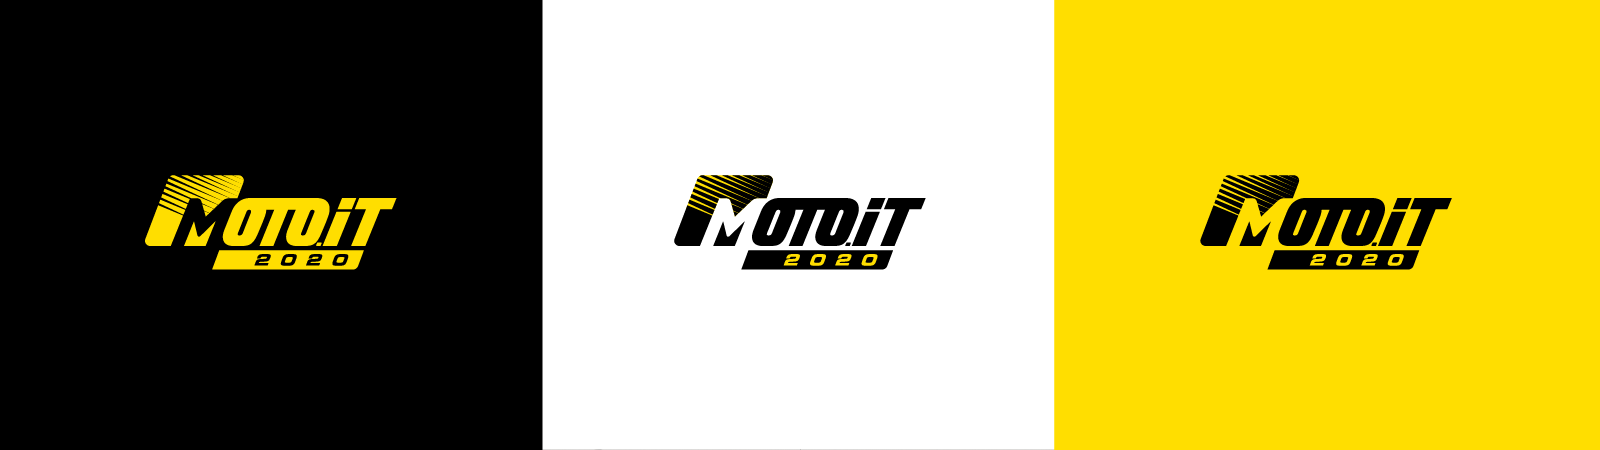 Moto.it logo combinations